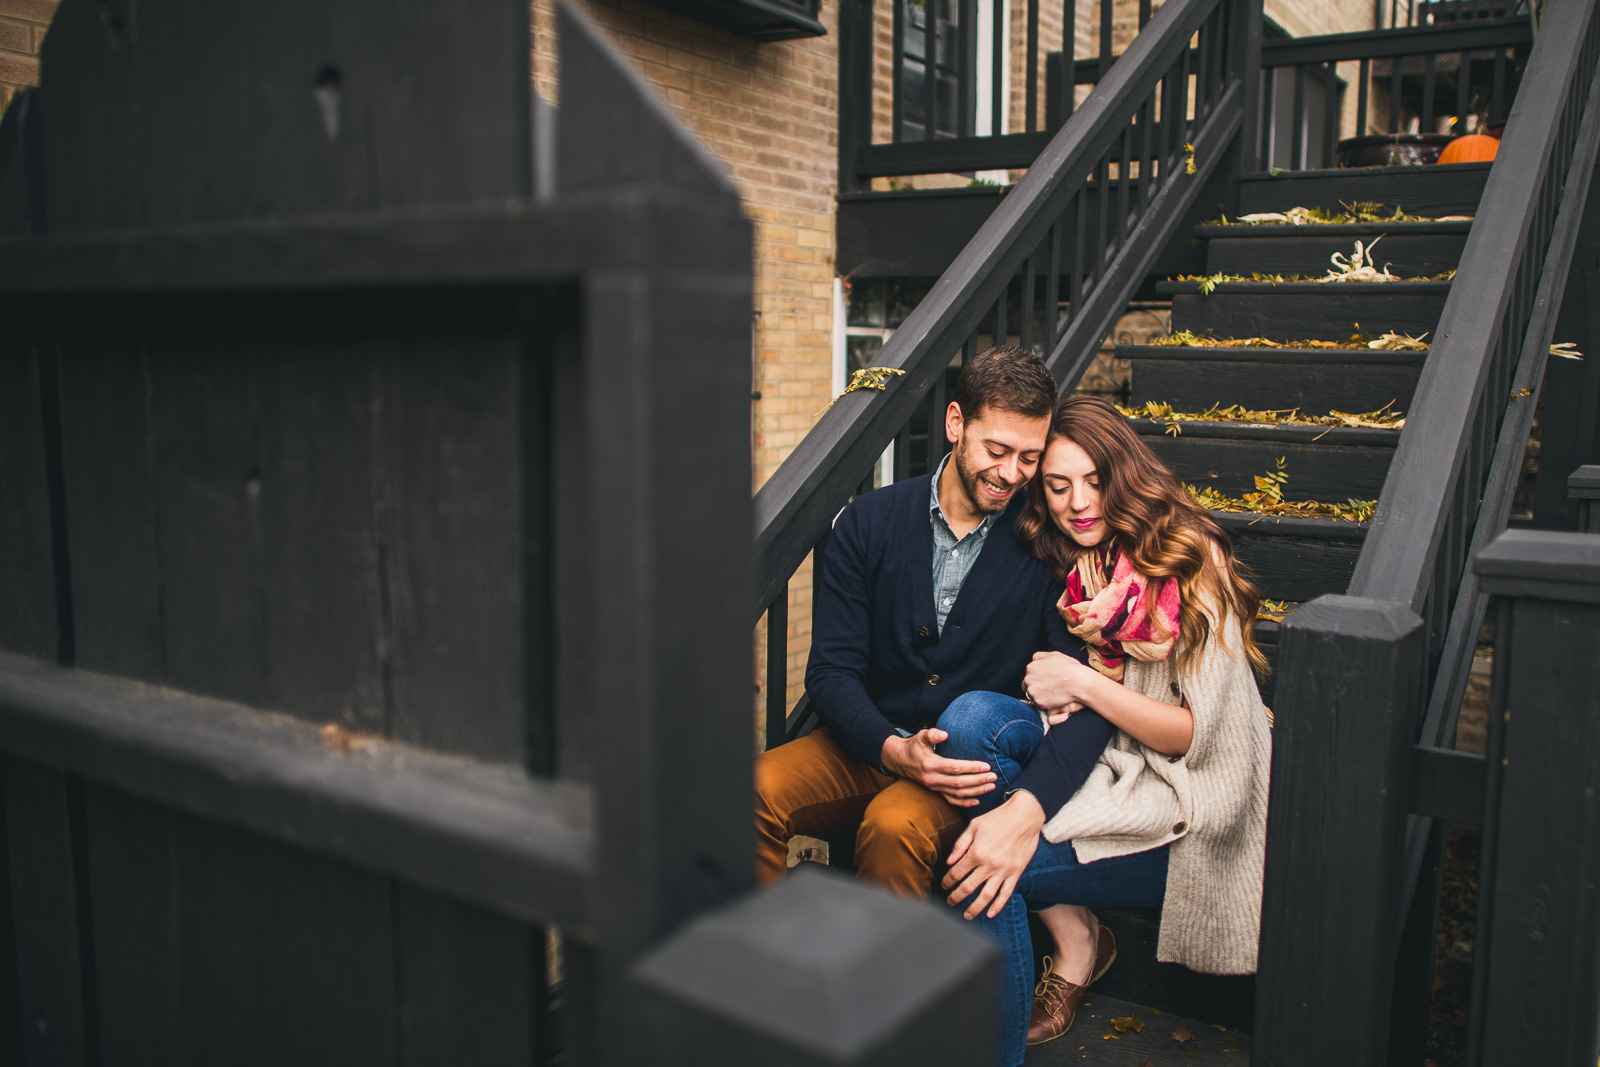 5 fun bucktown engagement photos - Bucktown Chicago Engagement Photos // Pearl + Ken